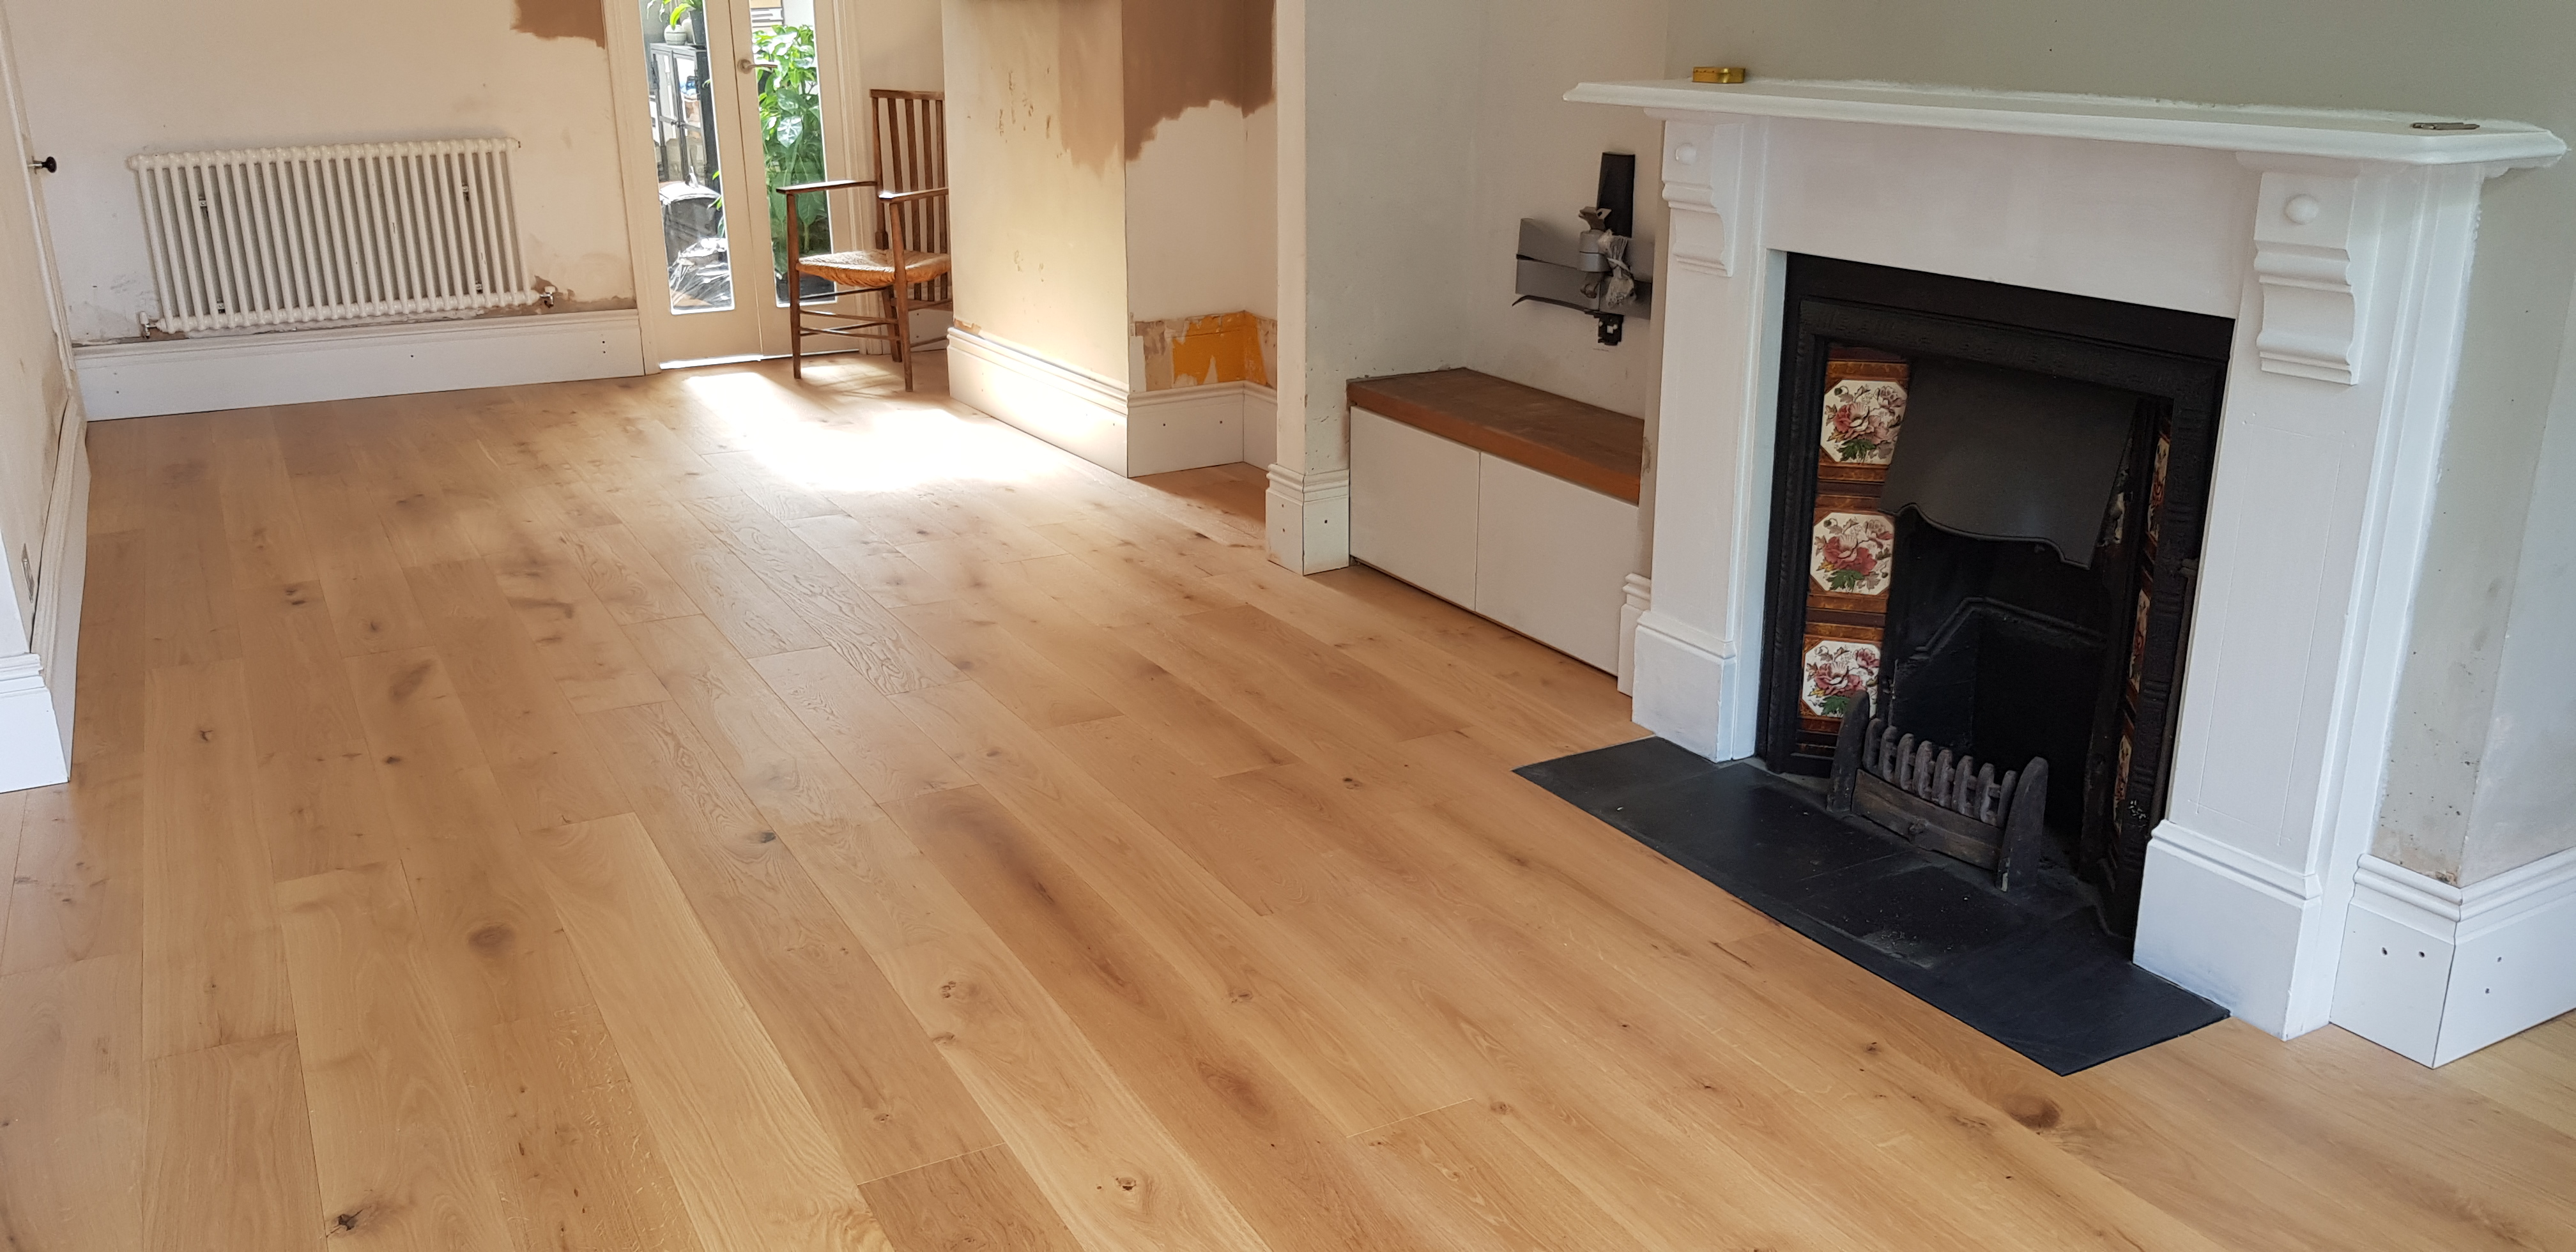 Engineered Timber Floor Atop Acoustic Floating Floor